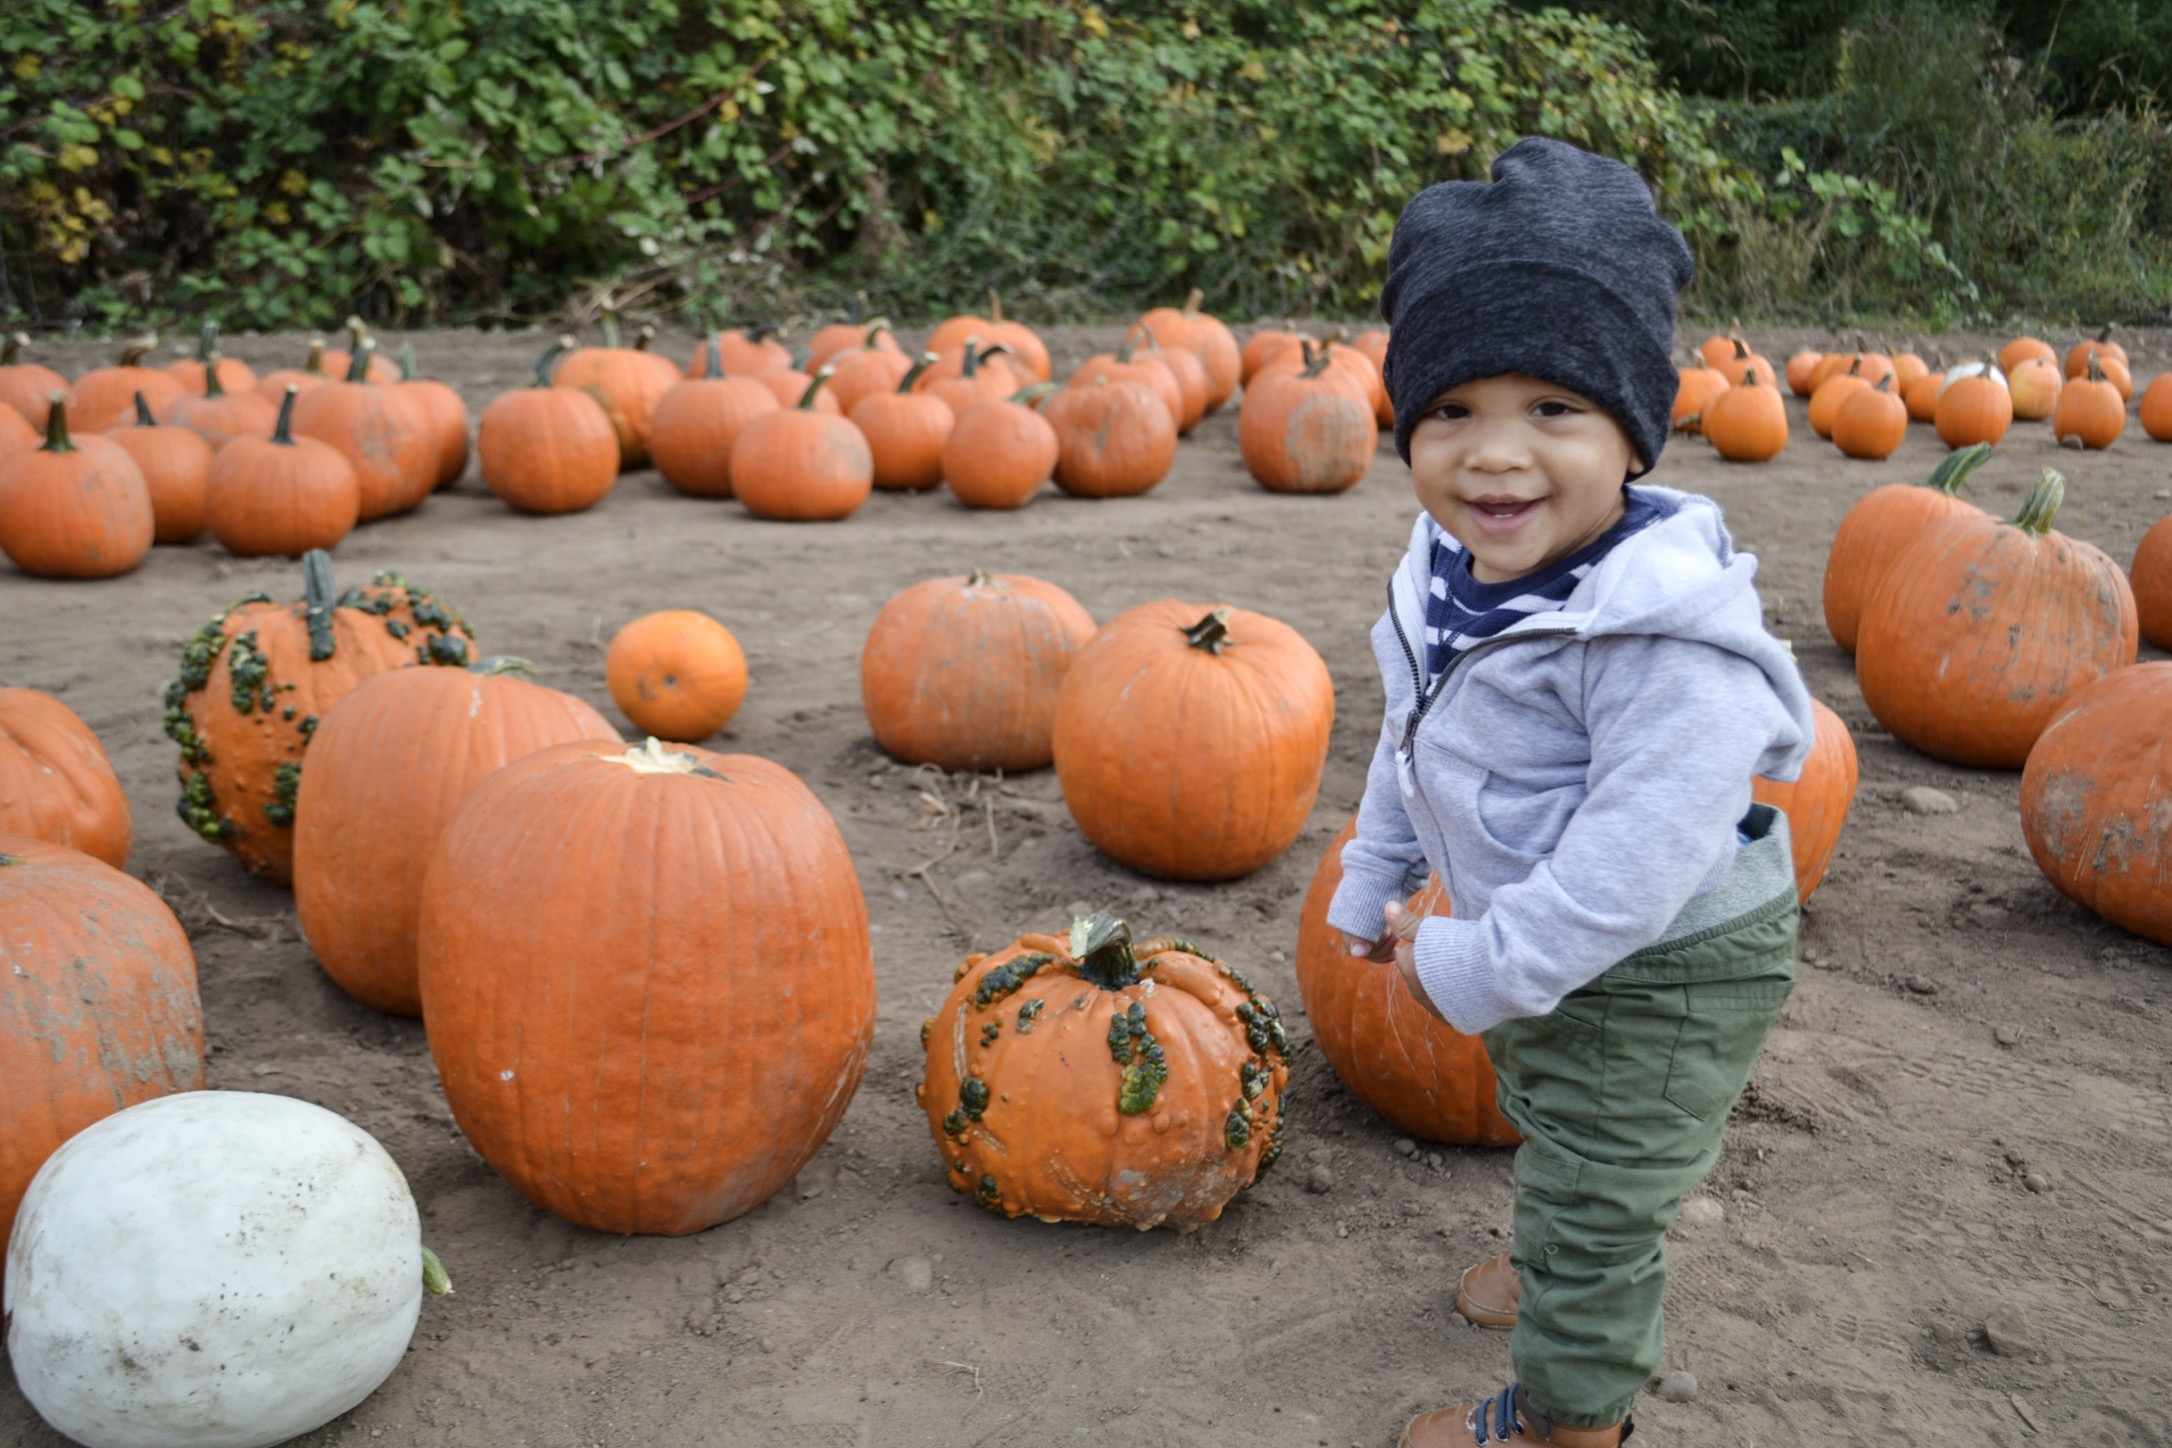 Only legit smiling picture before he fell on the bumpy pumpkin beside him.